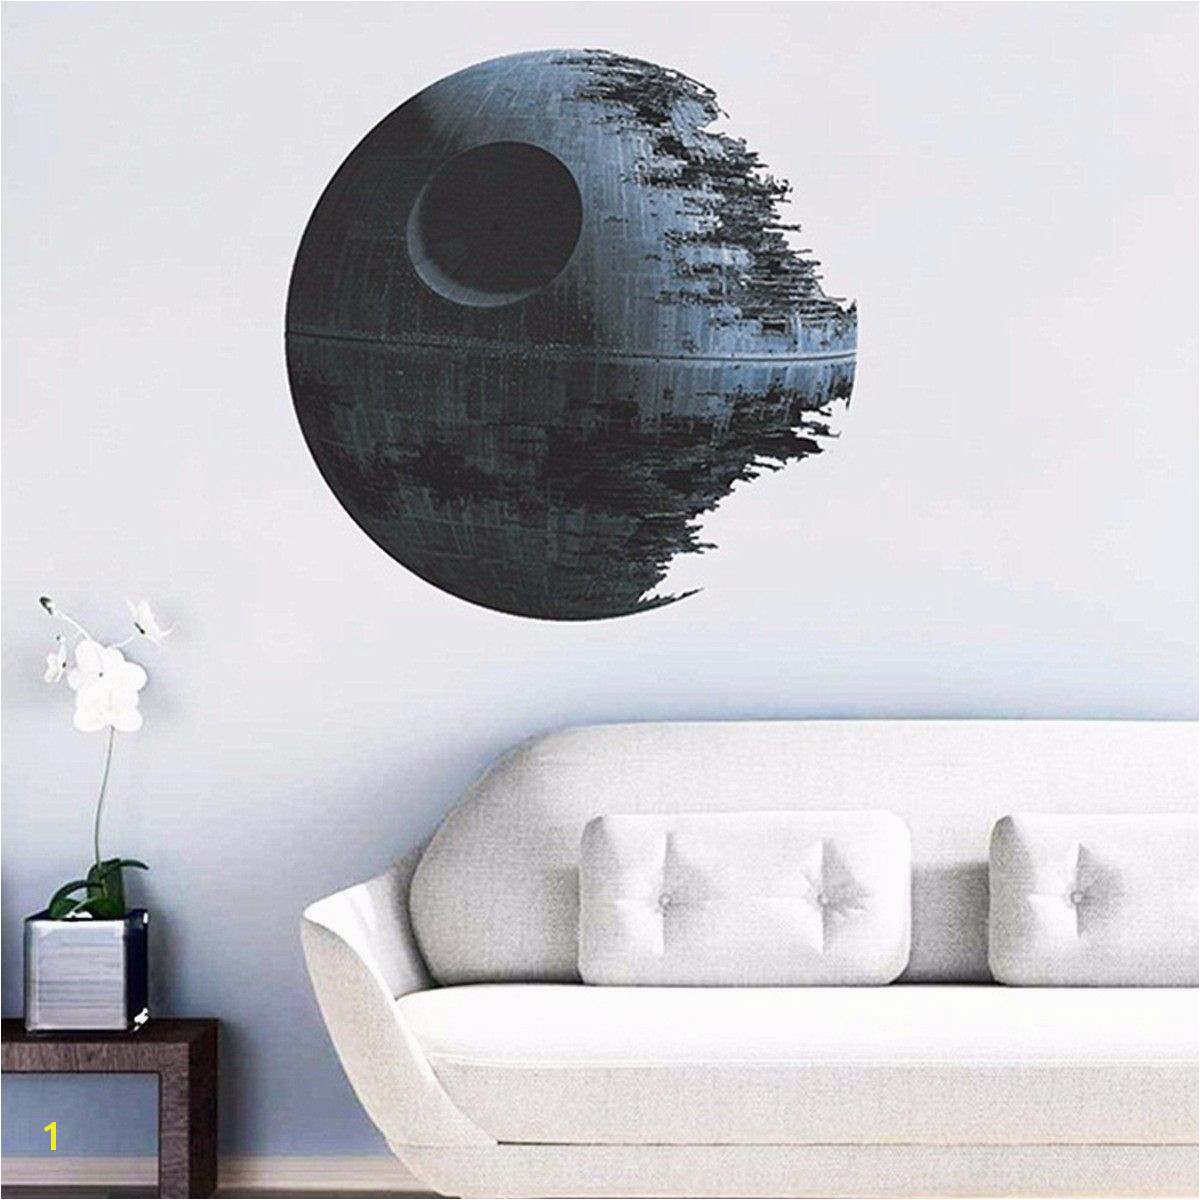 New Design Creative Star Wars Necrosis The Planet Home Decoration Wall Sticker Living Room Sofa Wall Decals Bedroom Wallpaper